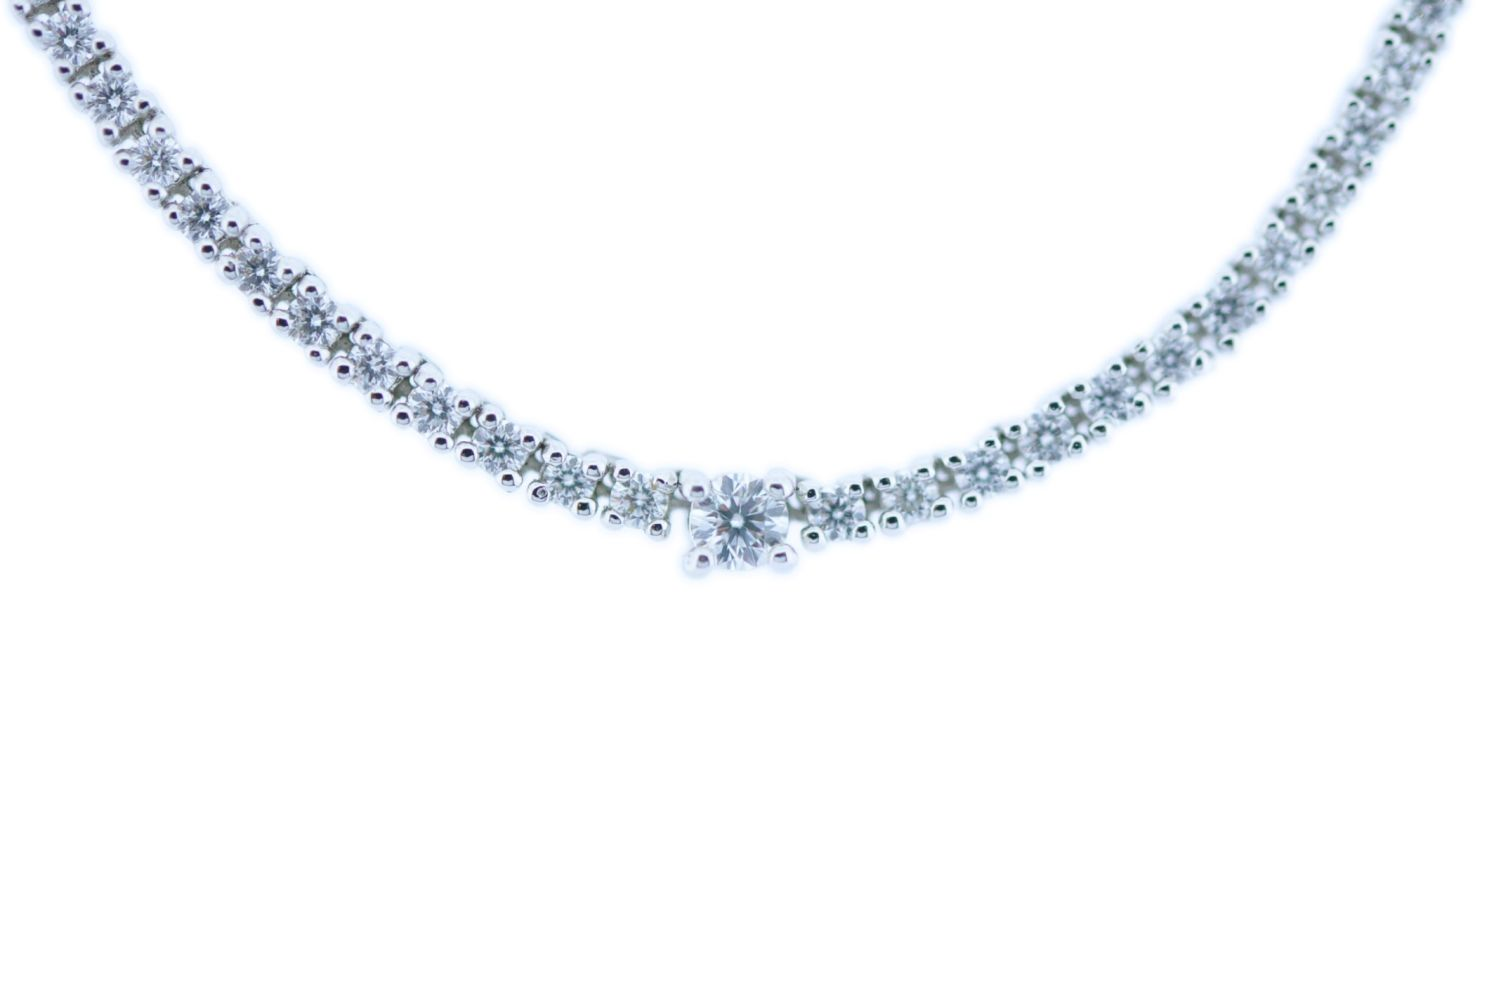 #100 Diamond Necklace | Diamantcollier Image